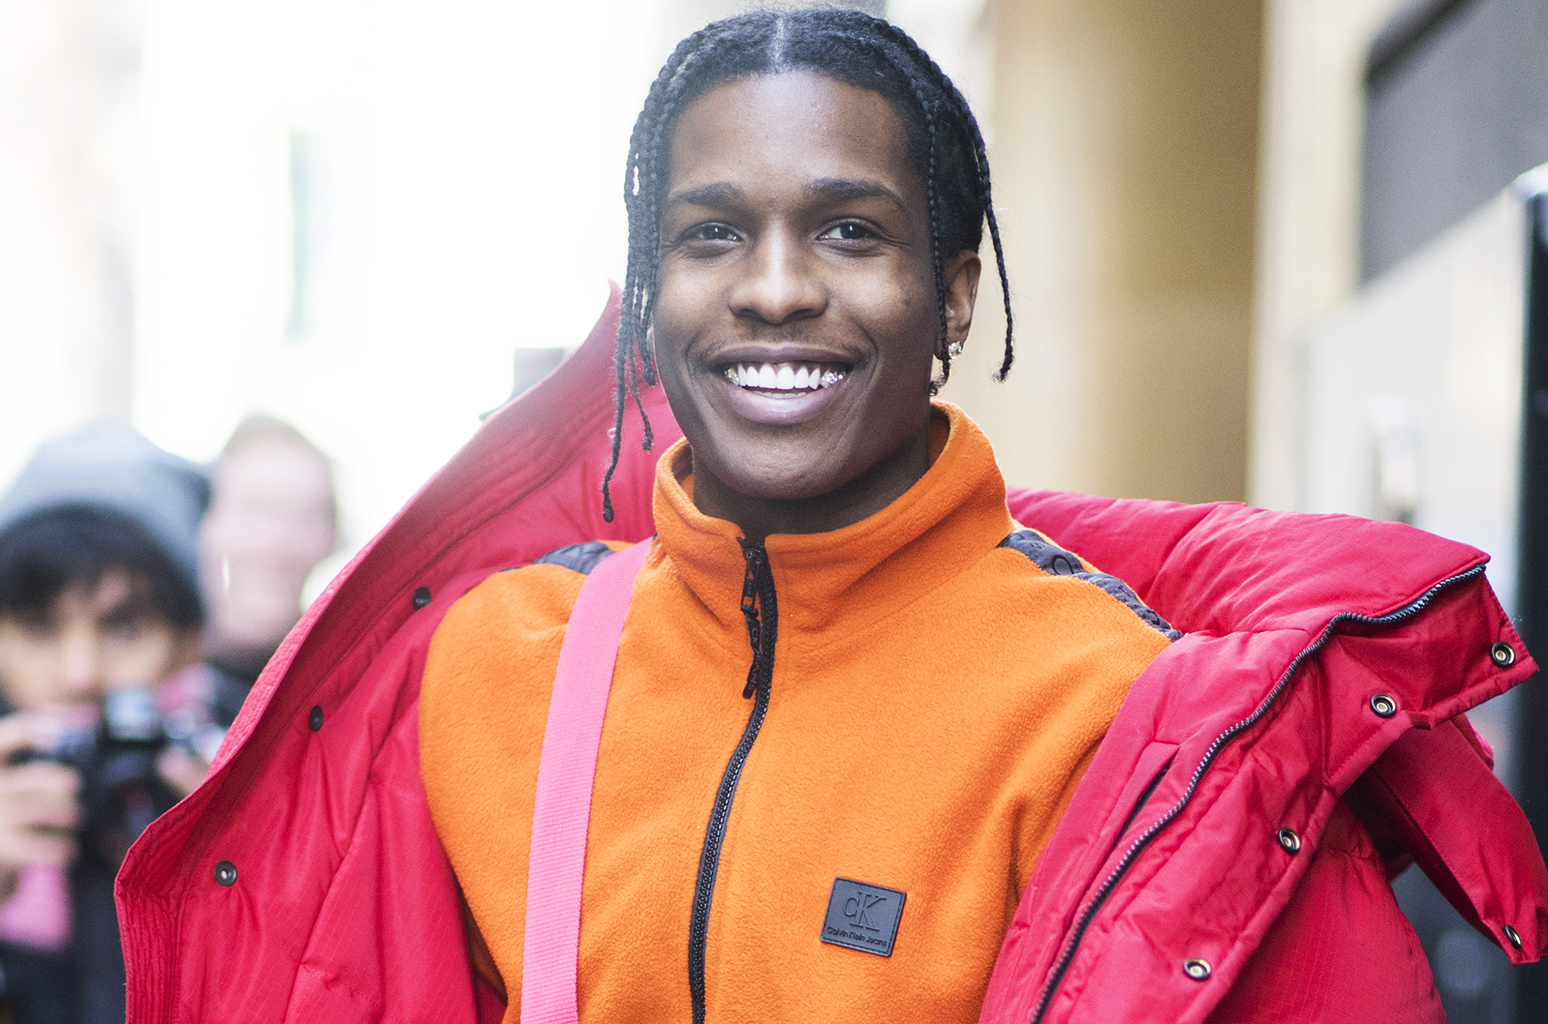 1c33cdd4 ASAP ROCKY - FASHION ICON OF TODAY - Vitae Moderna